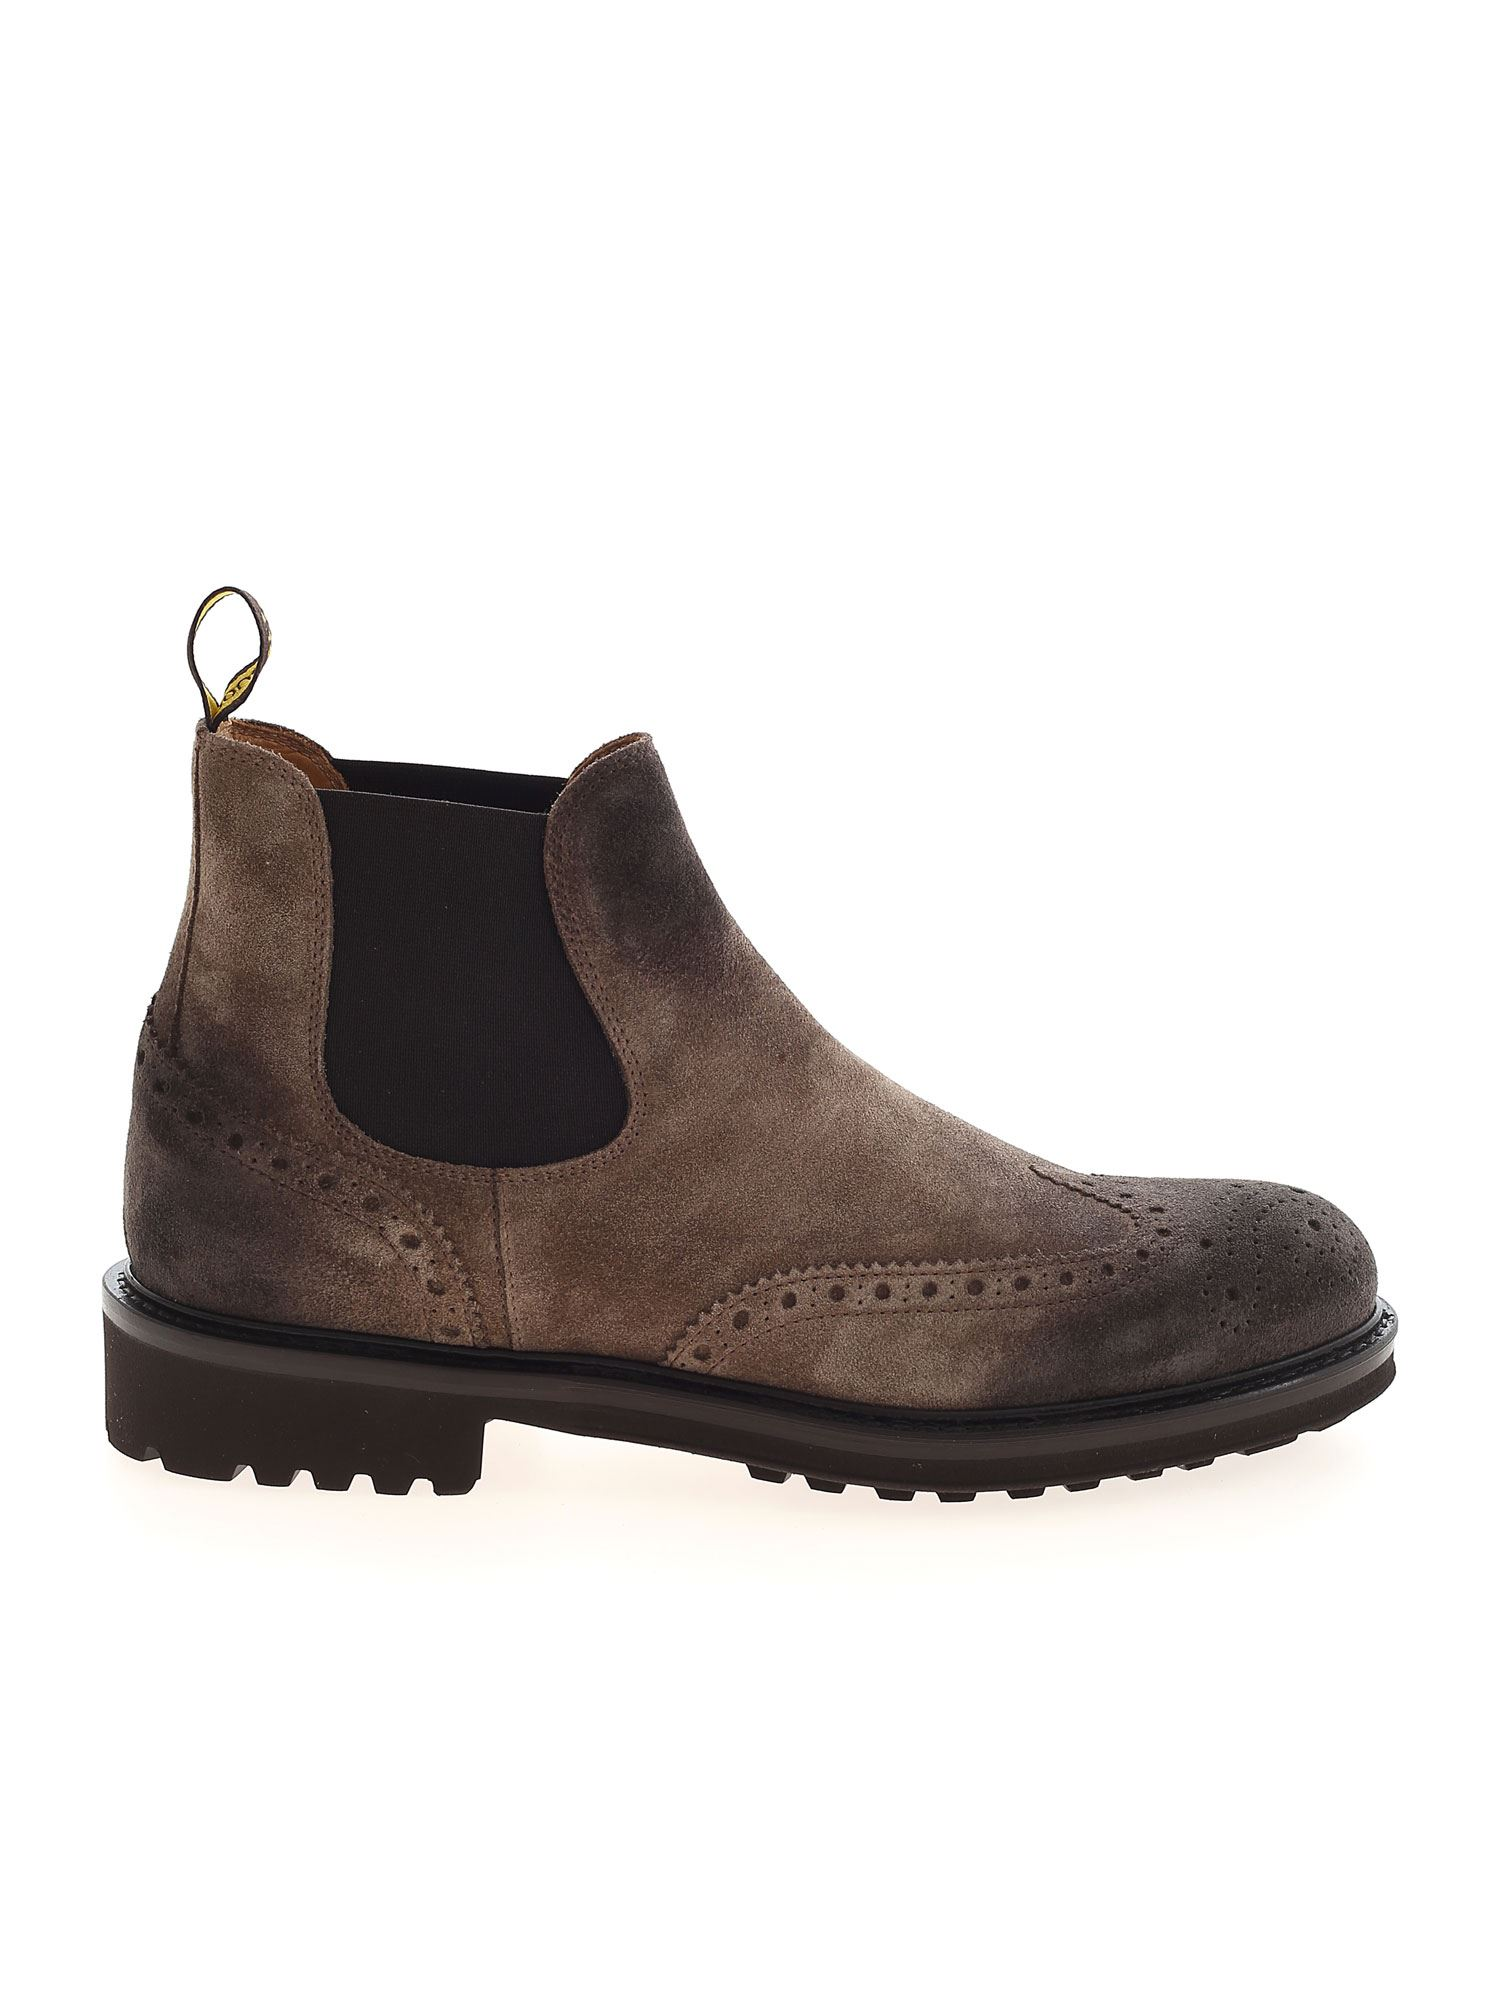 Doucal's Chelsea Boots In Coffee Color In Beige